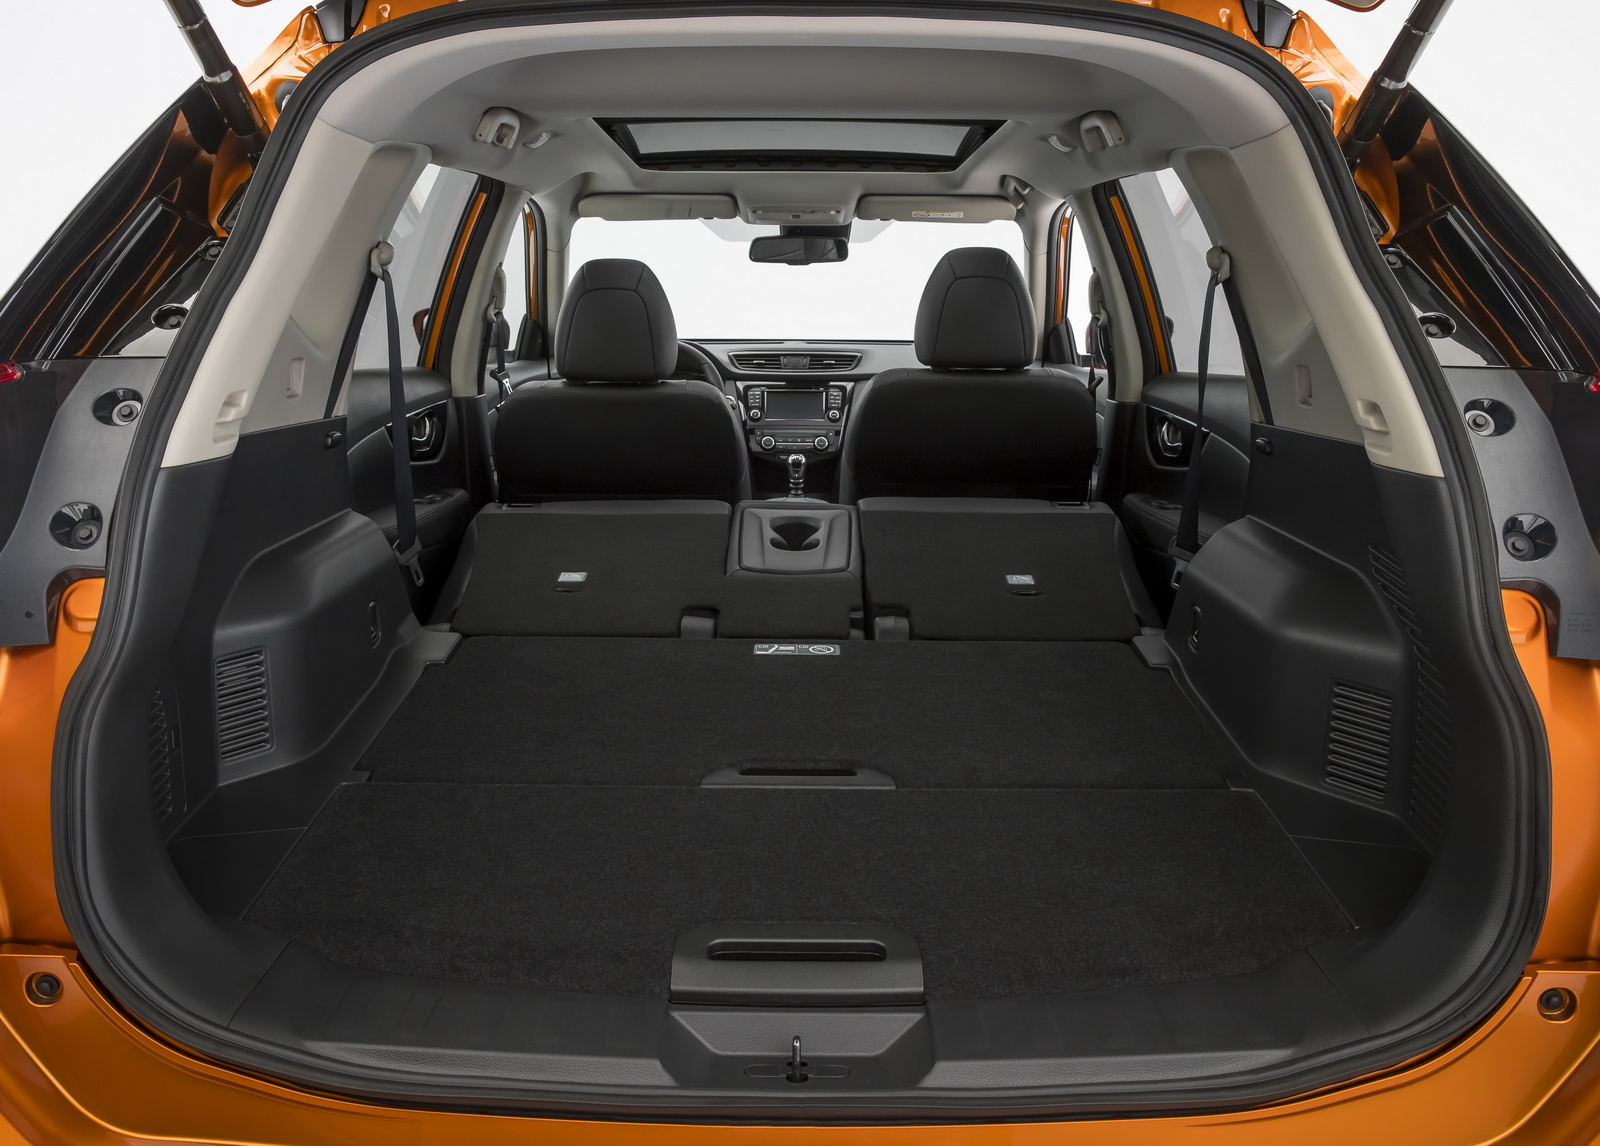 nissan updates x trail suv with sharper looks semi autonomous tech carscoops. Black Bedroom Furniture Sets. Home Design Ideas